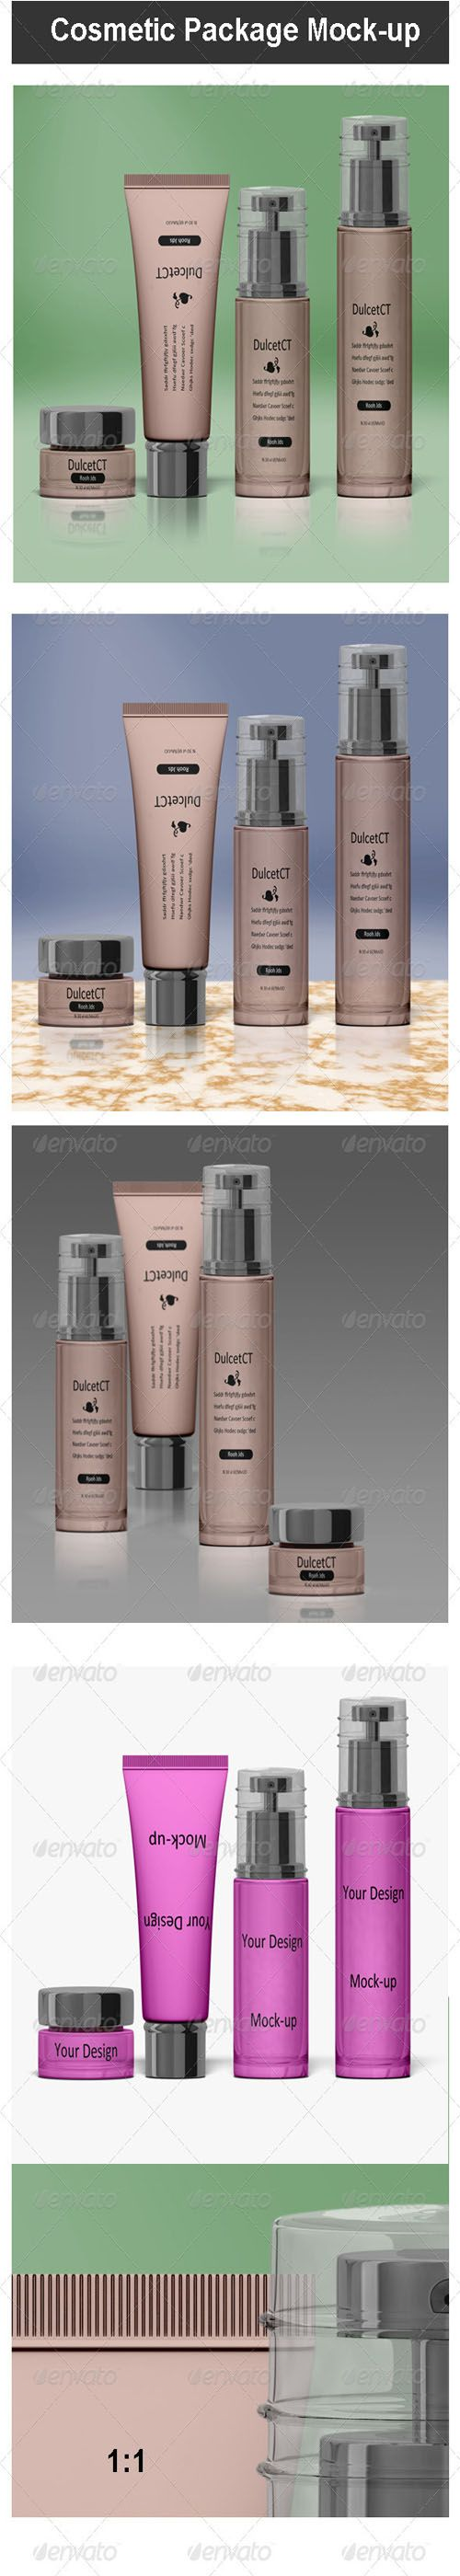 GraphicRiver - Cosmetic Package Mock-up